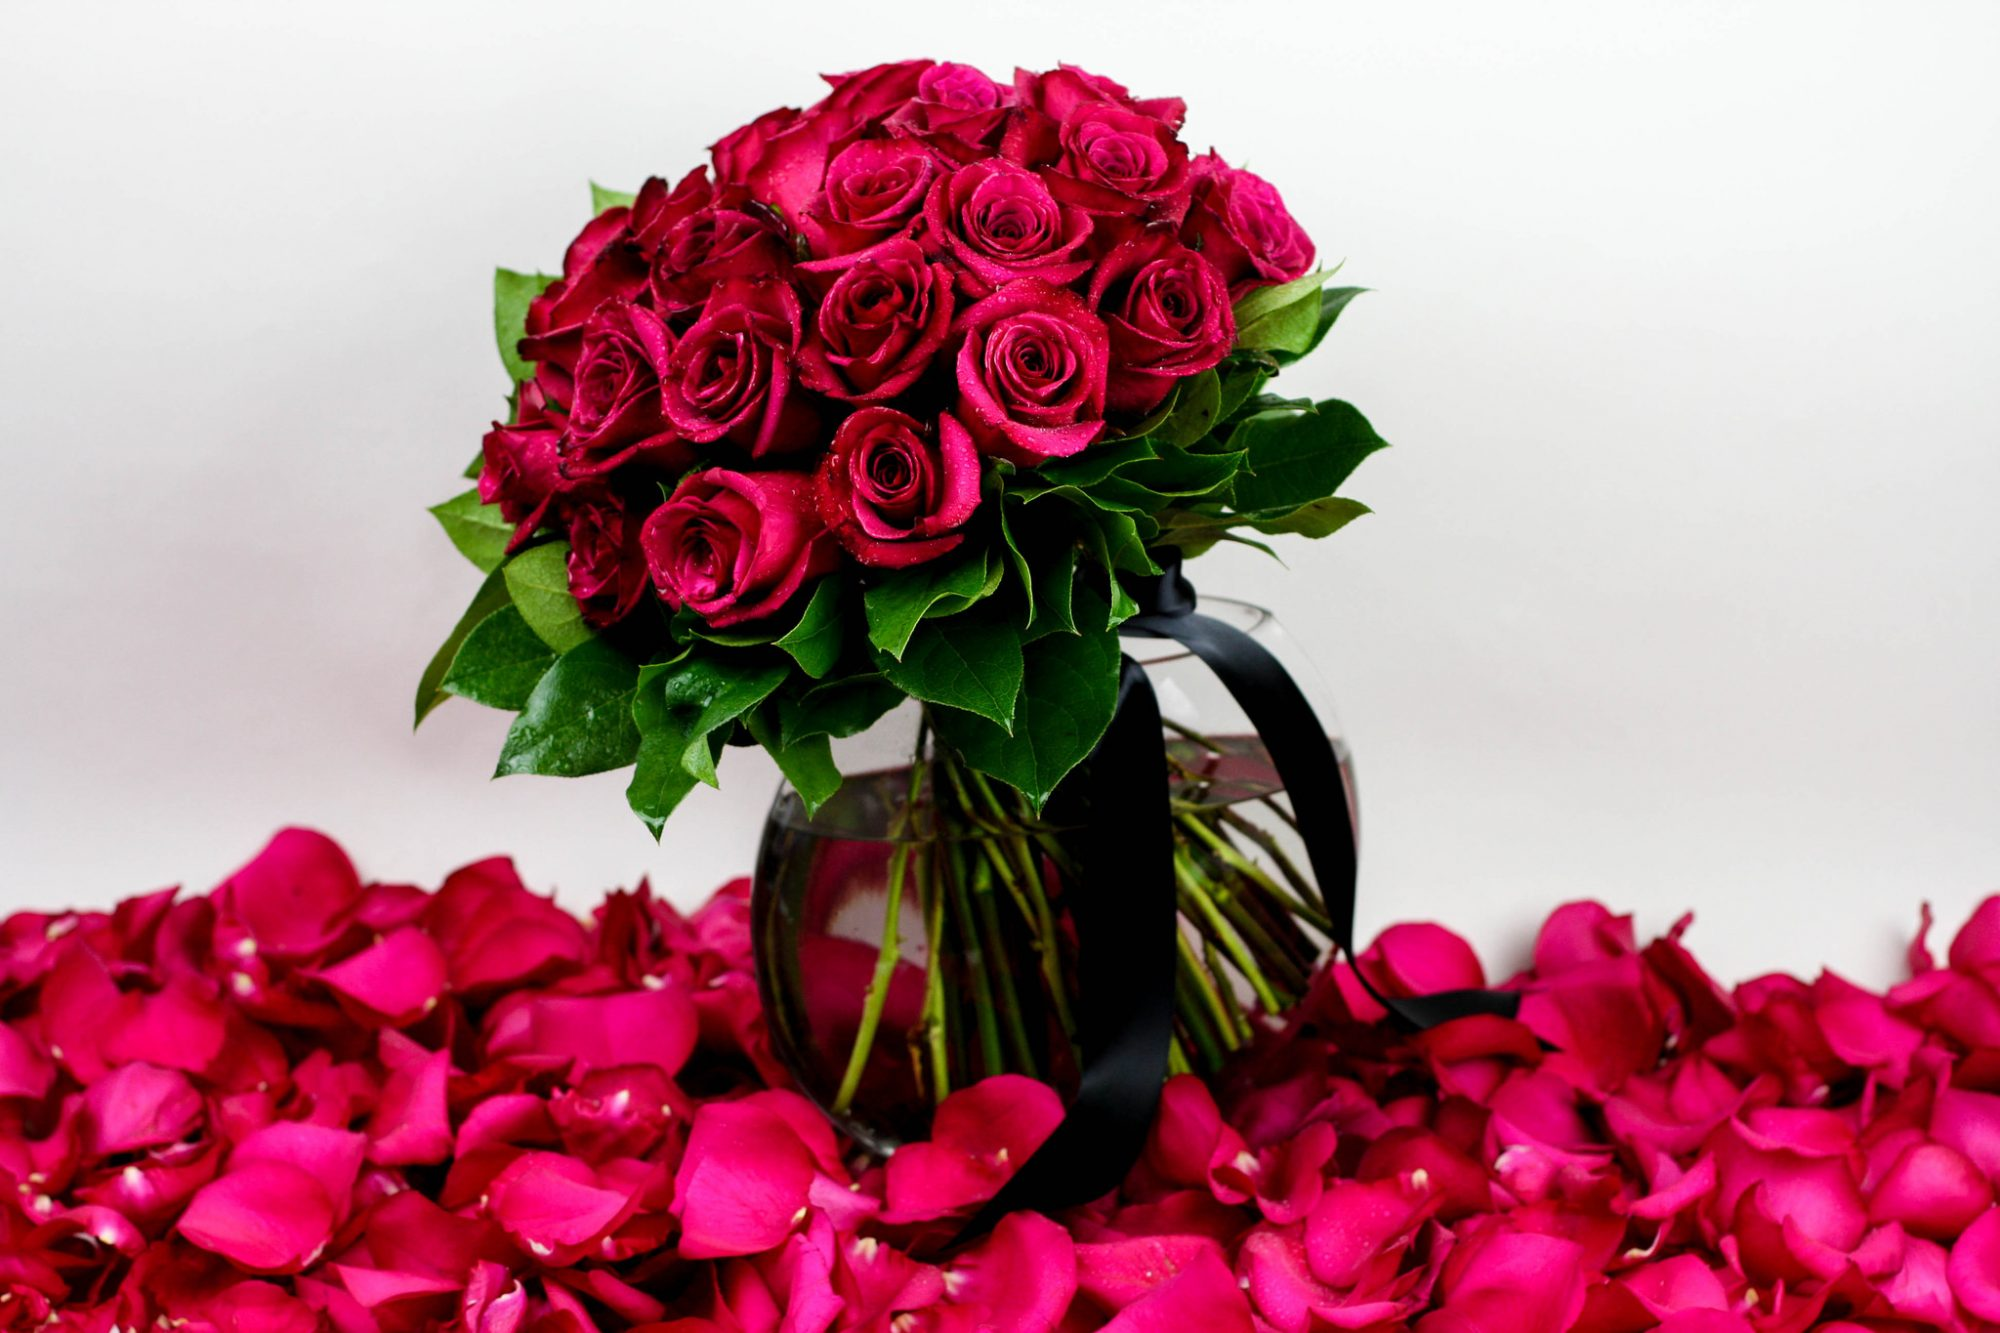 valentine flower arrangement ideas from the pros  real simple, Beautiful flower